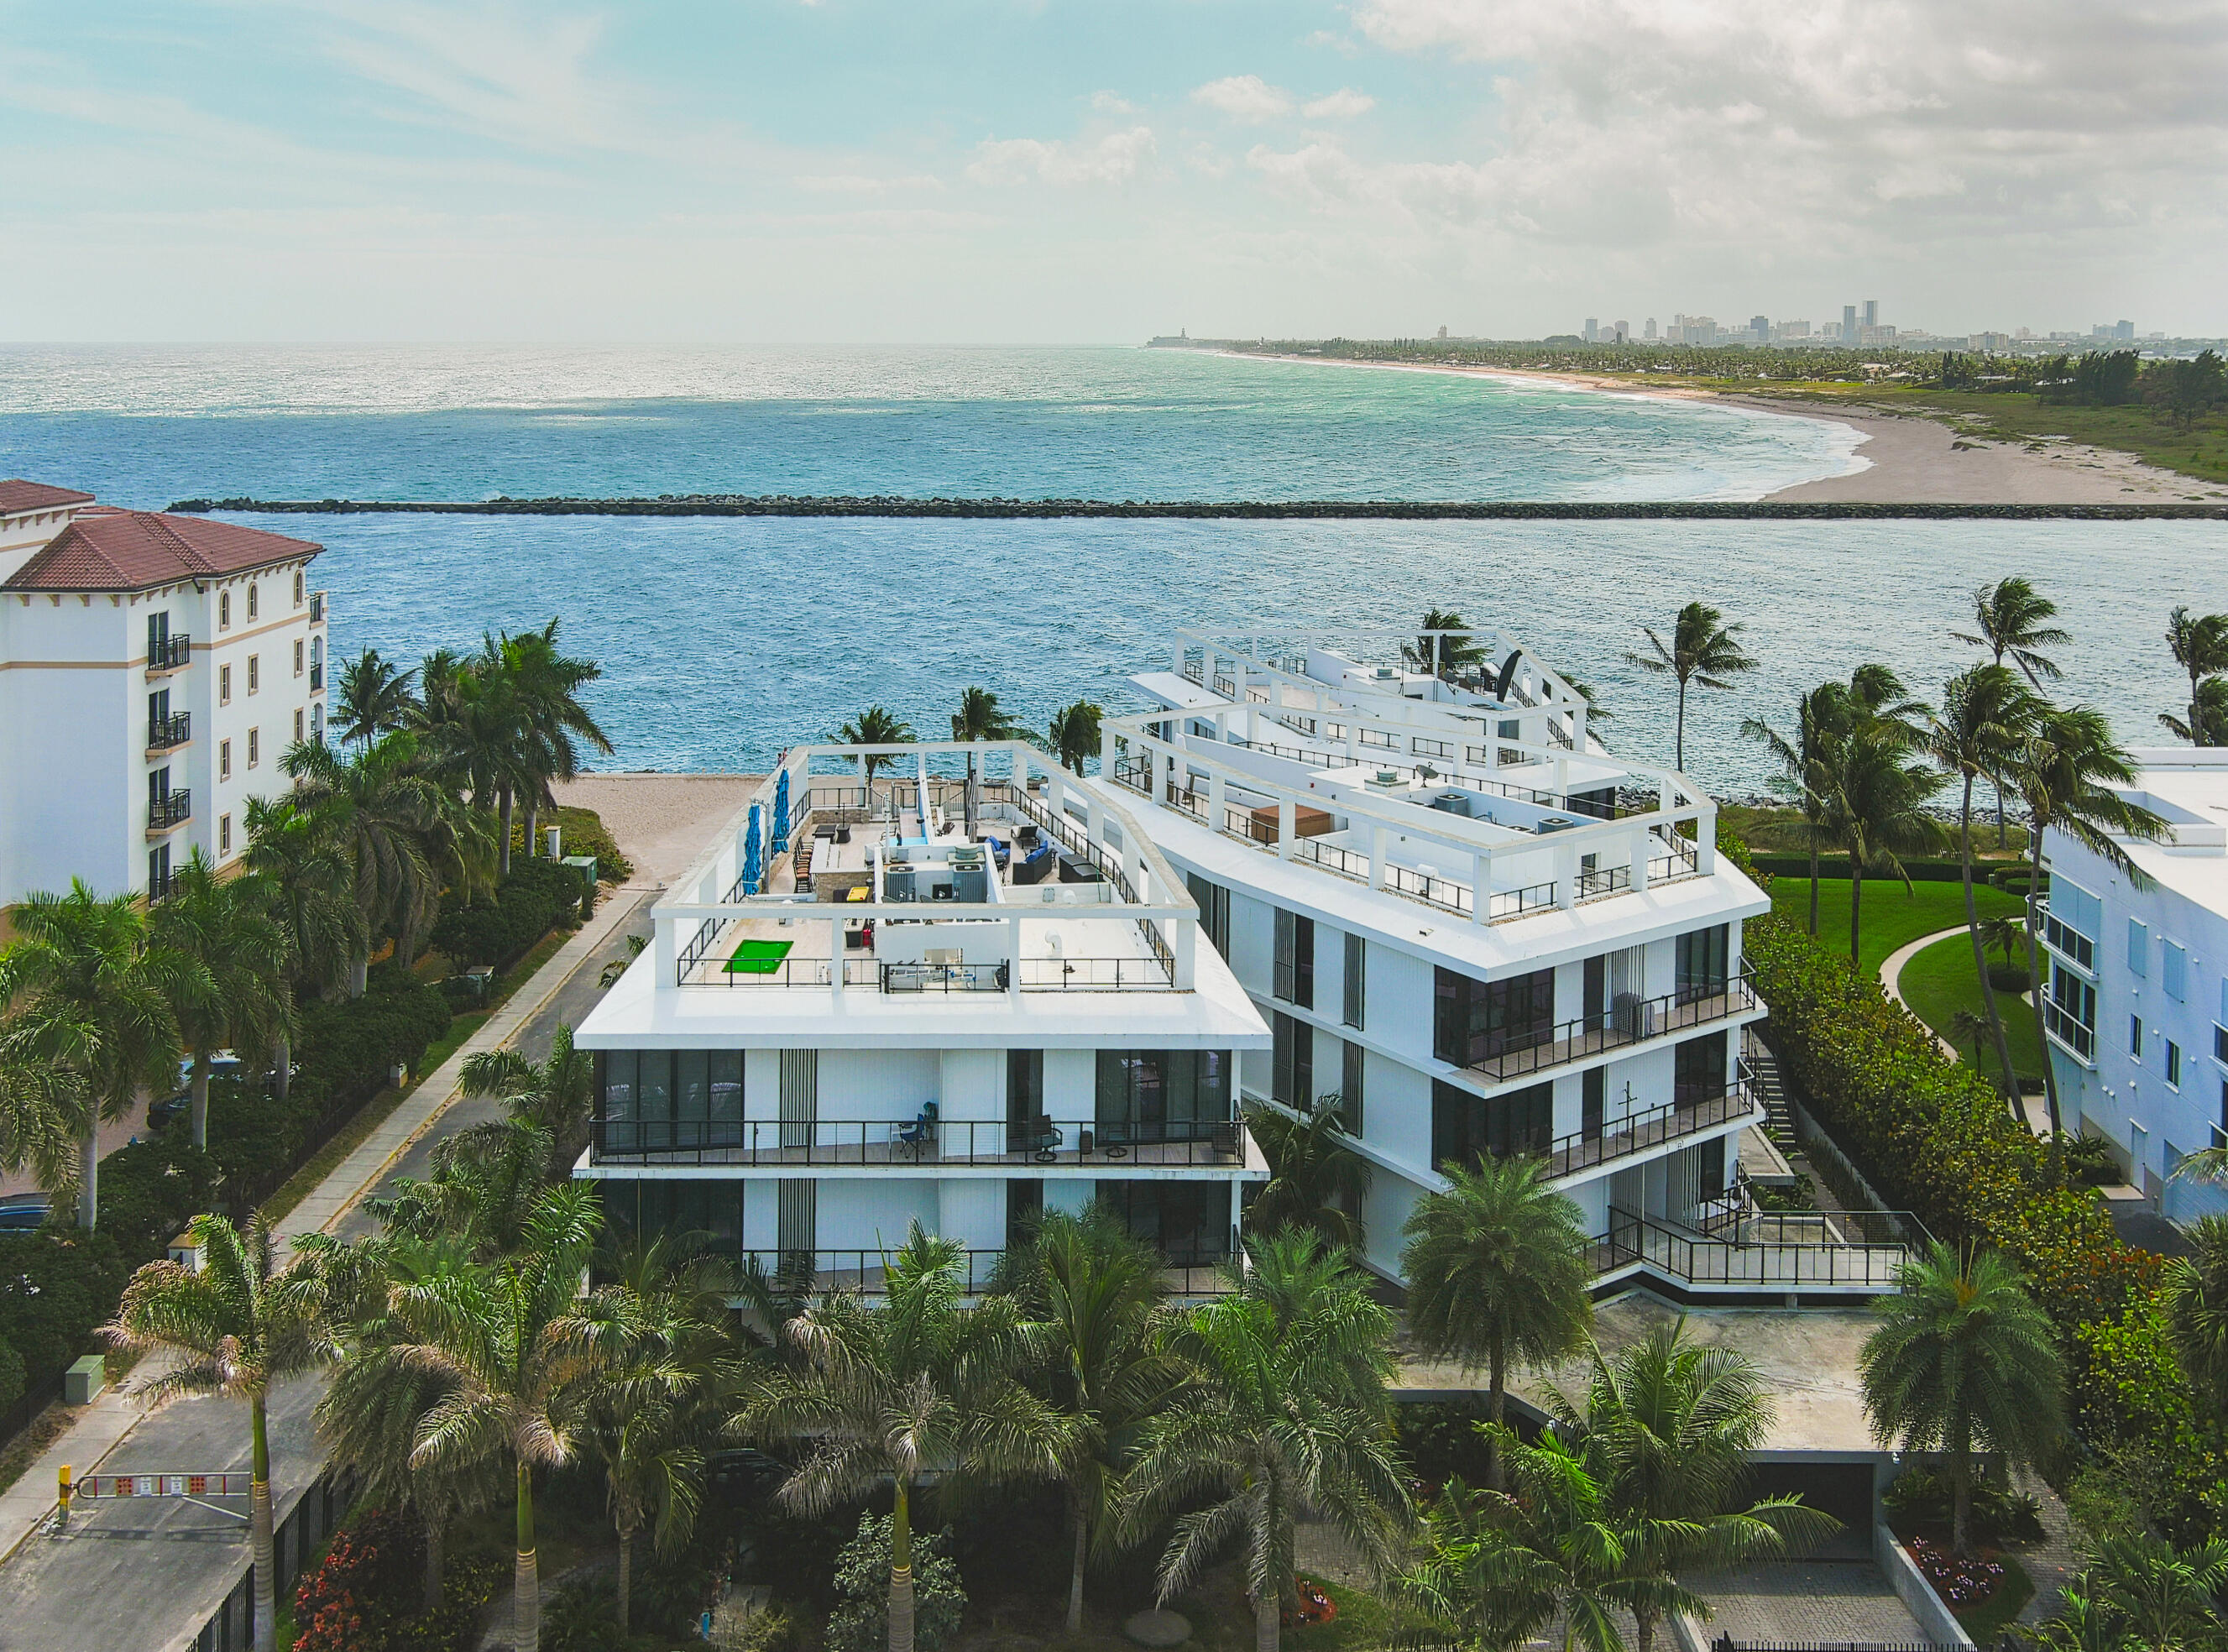 106  Inlet Way 202 For Sale 10700172, FL